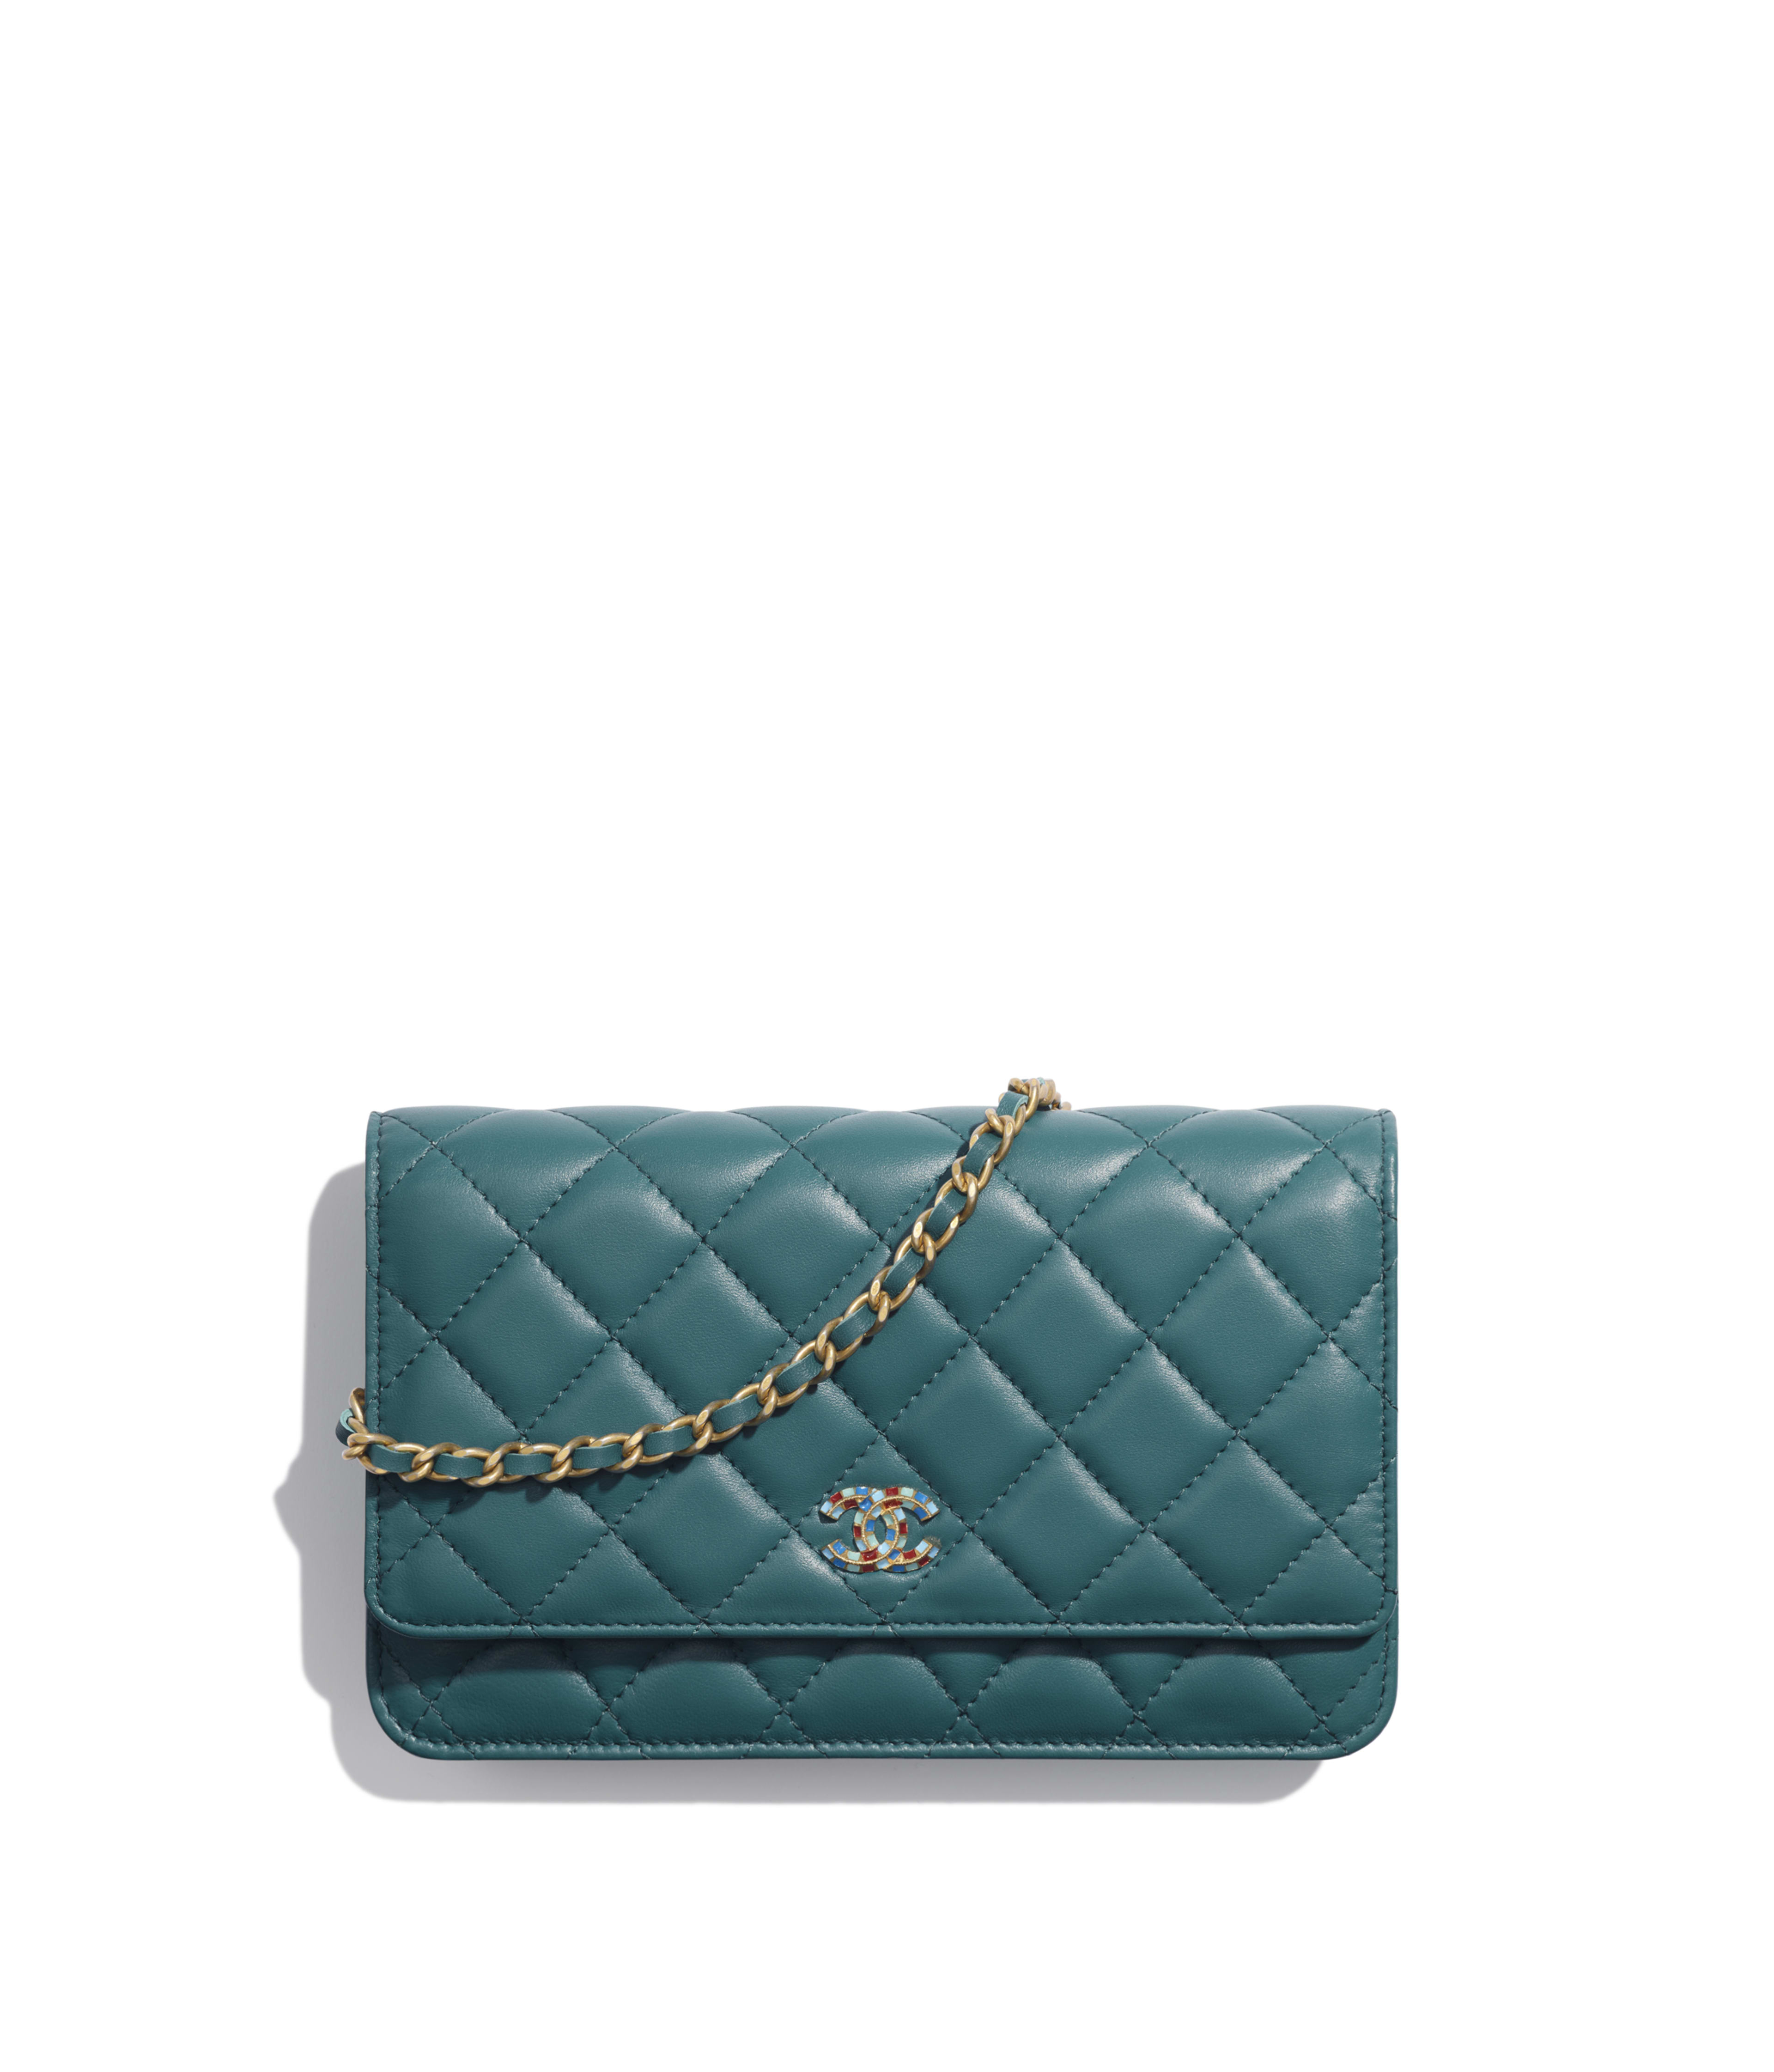 0424bfcb84c3 Wallet on Chain Lambskin & Gold-Tone Metal, Dark Turquoise Ref.  AP0529B00866N4712